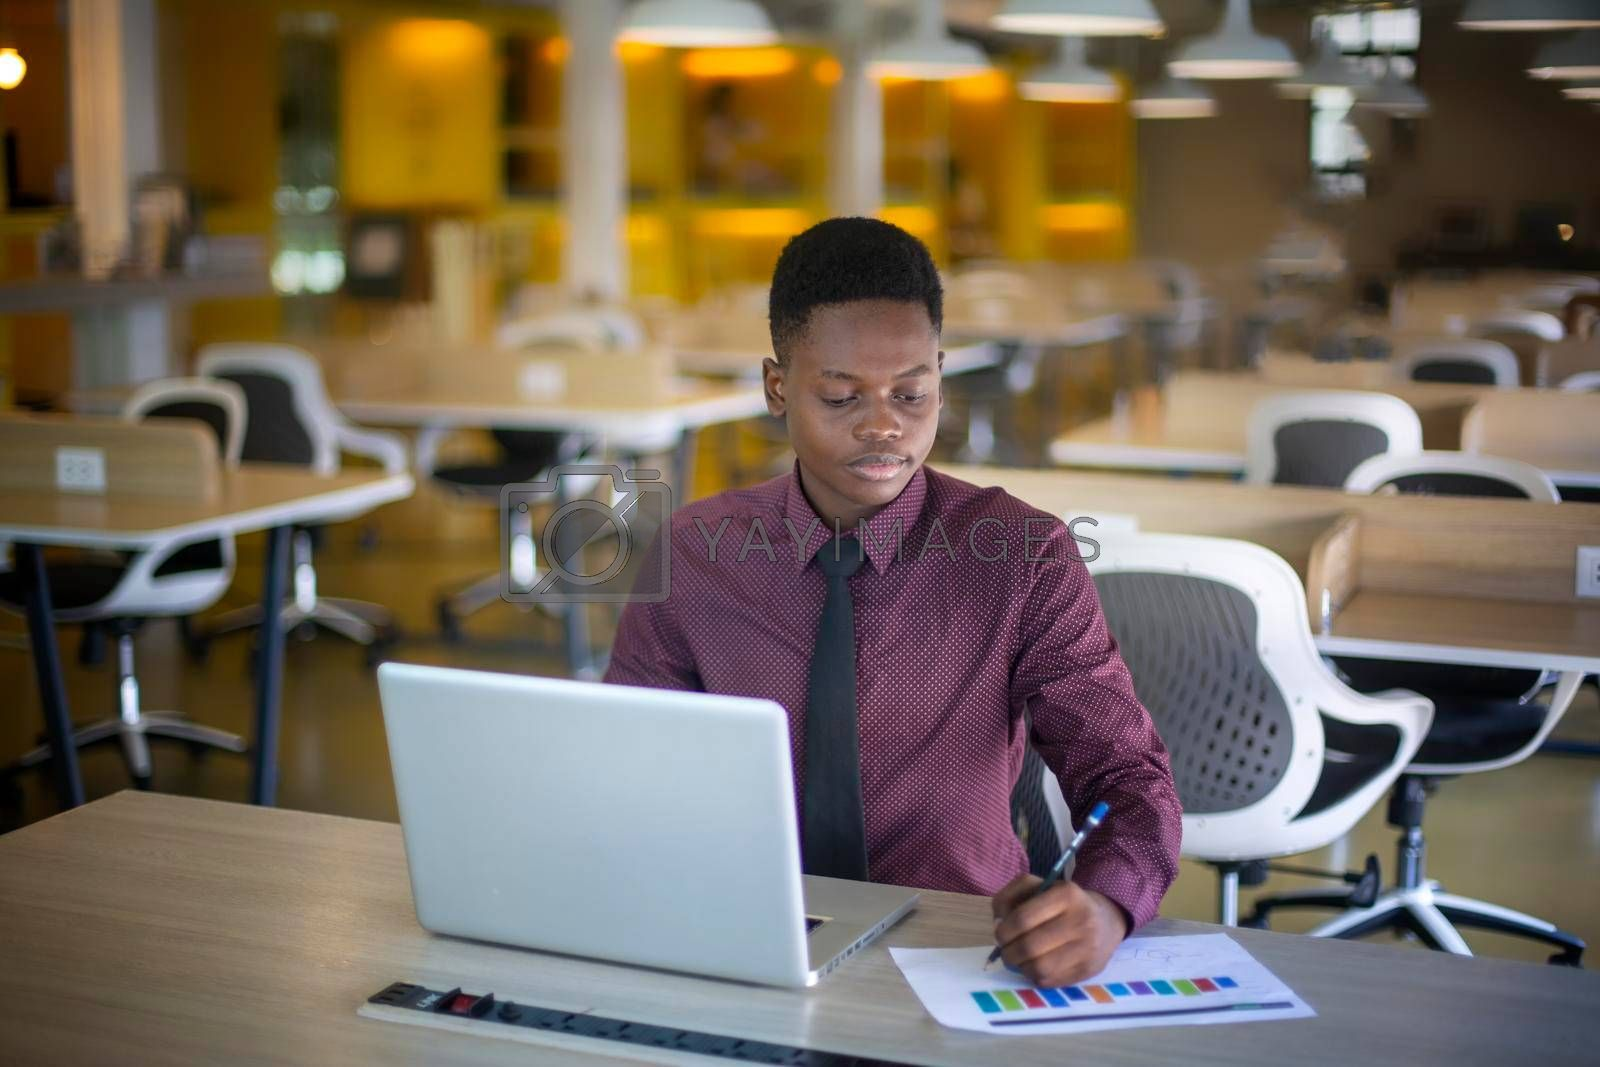 Royalty free image of portrait of contemporary African-American man using laptop sitting at table in coffee shop, copy space by chuanchai